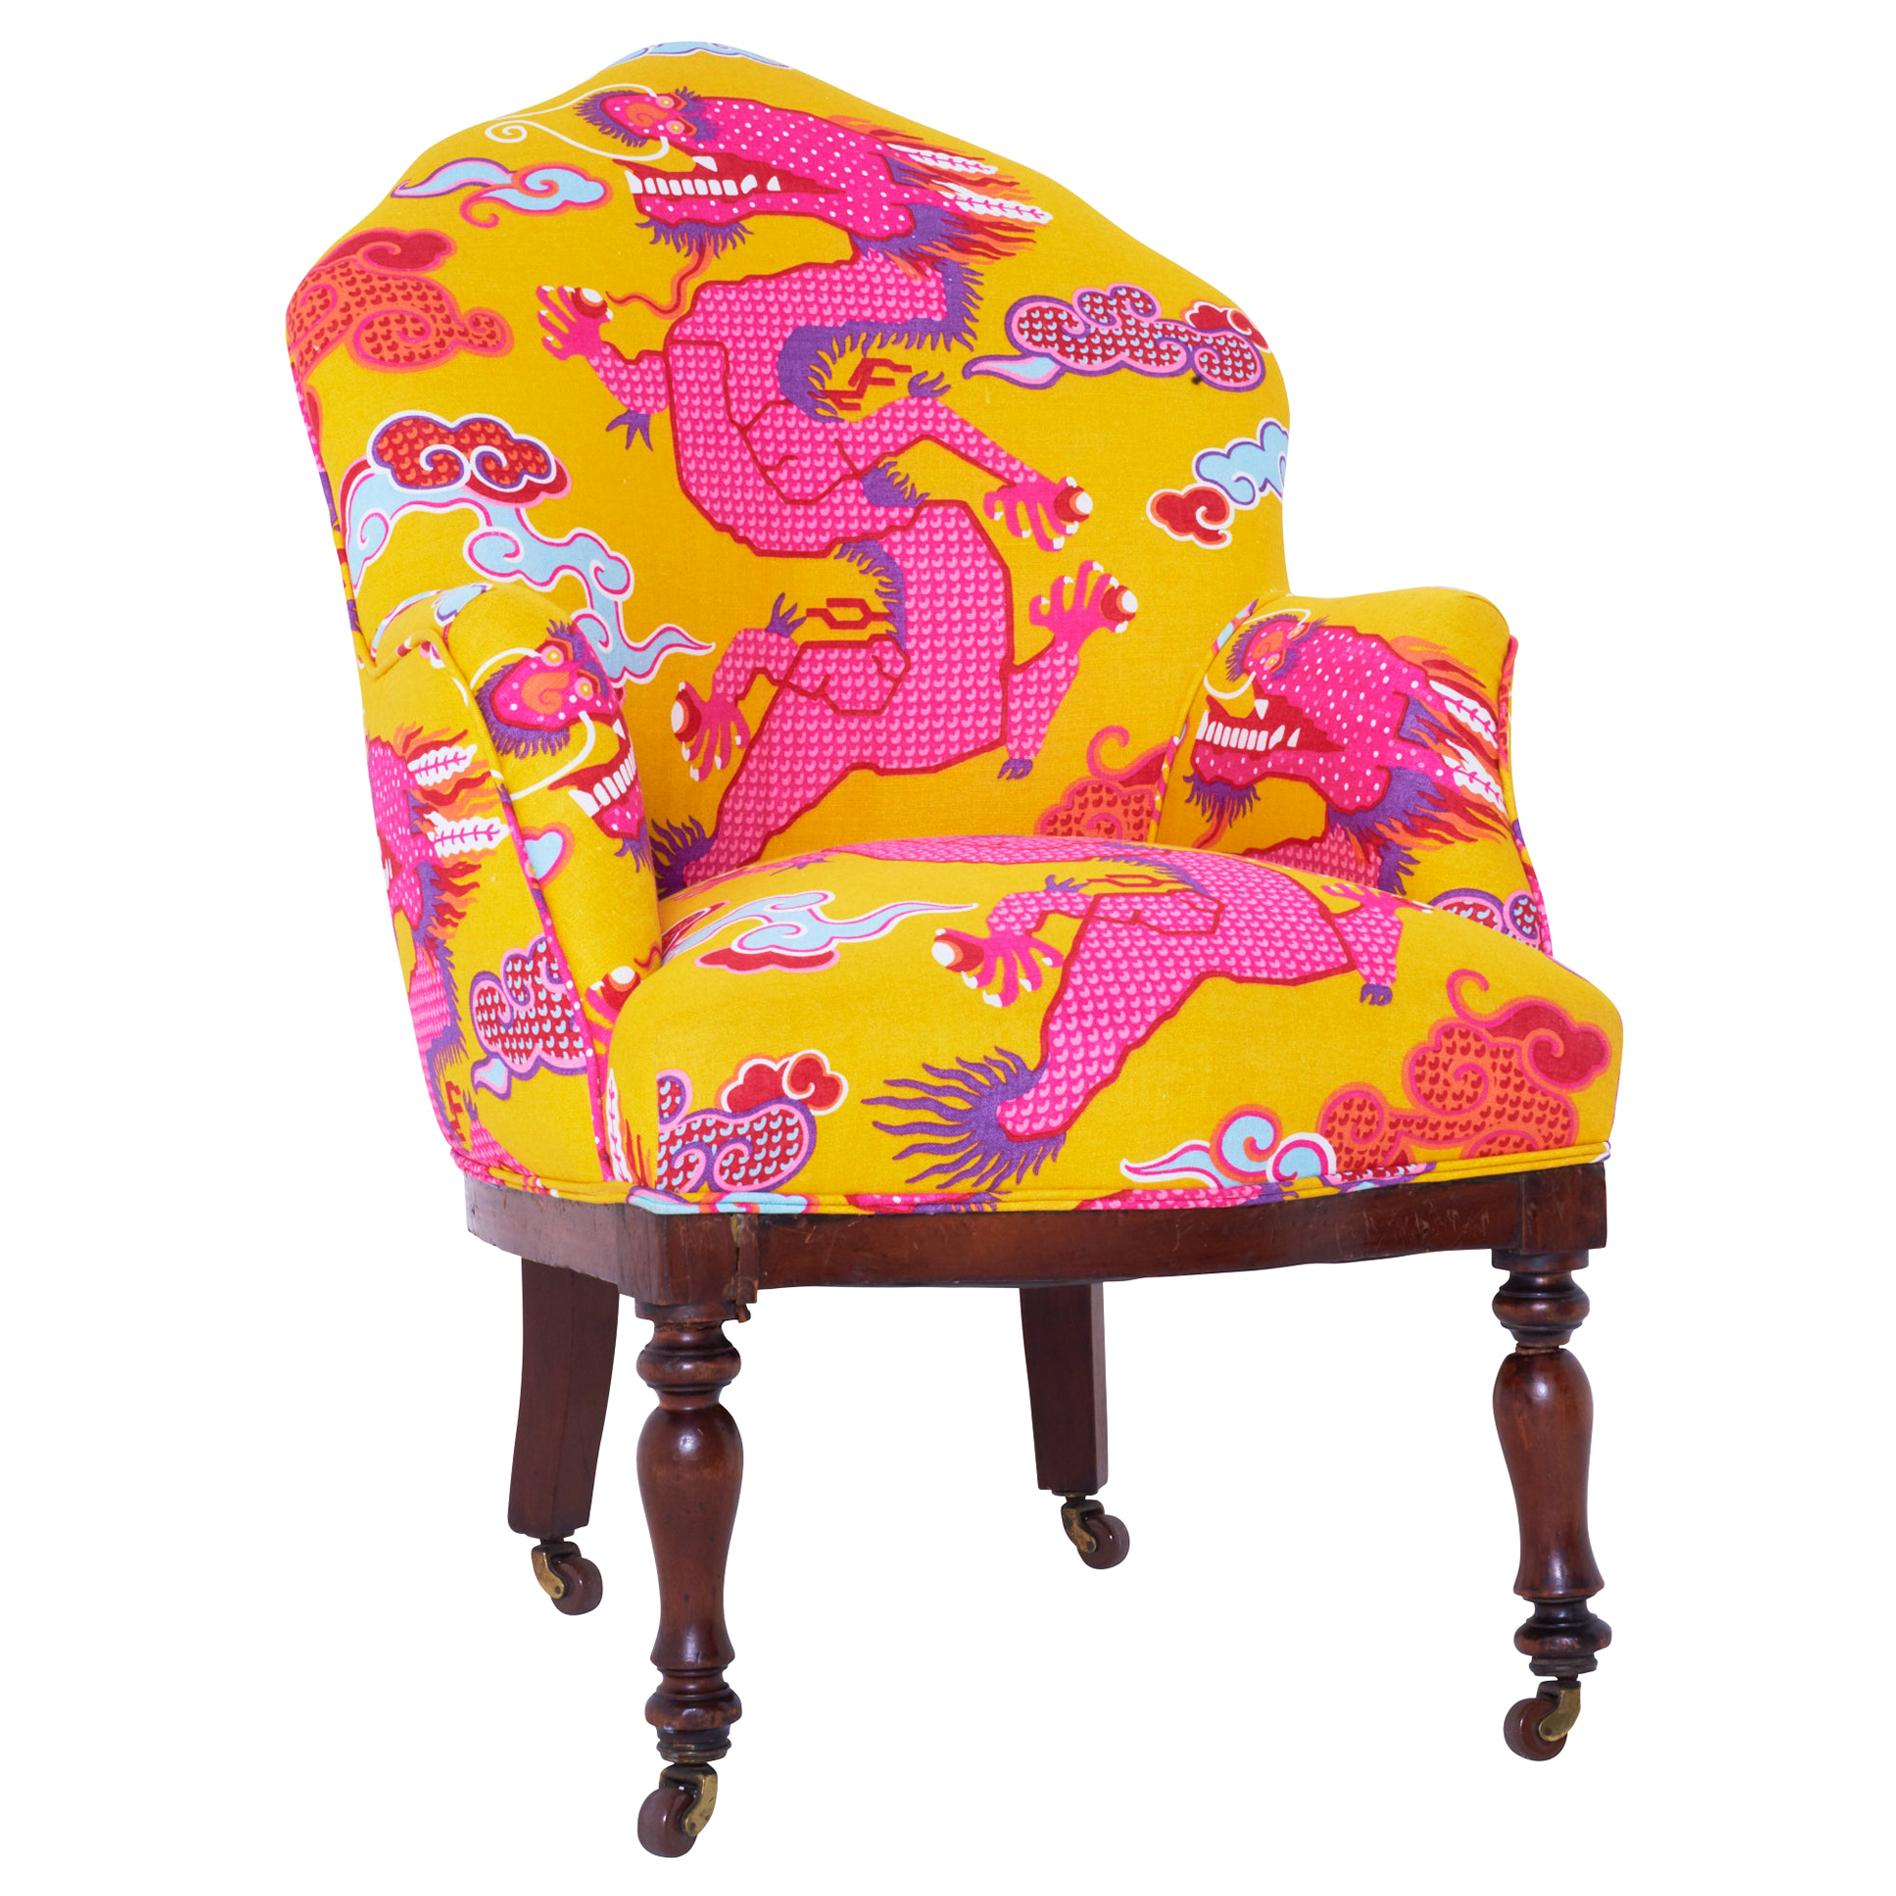 19th Century French Armchair Upholstered in Magical Ming Dragon Fabric